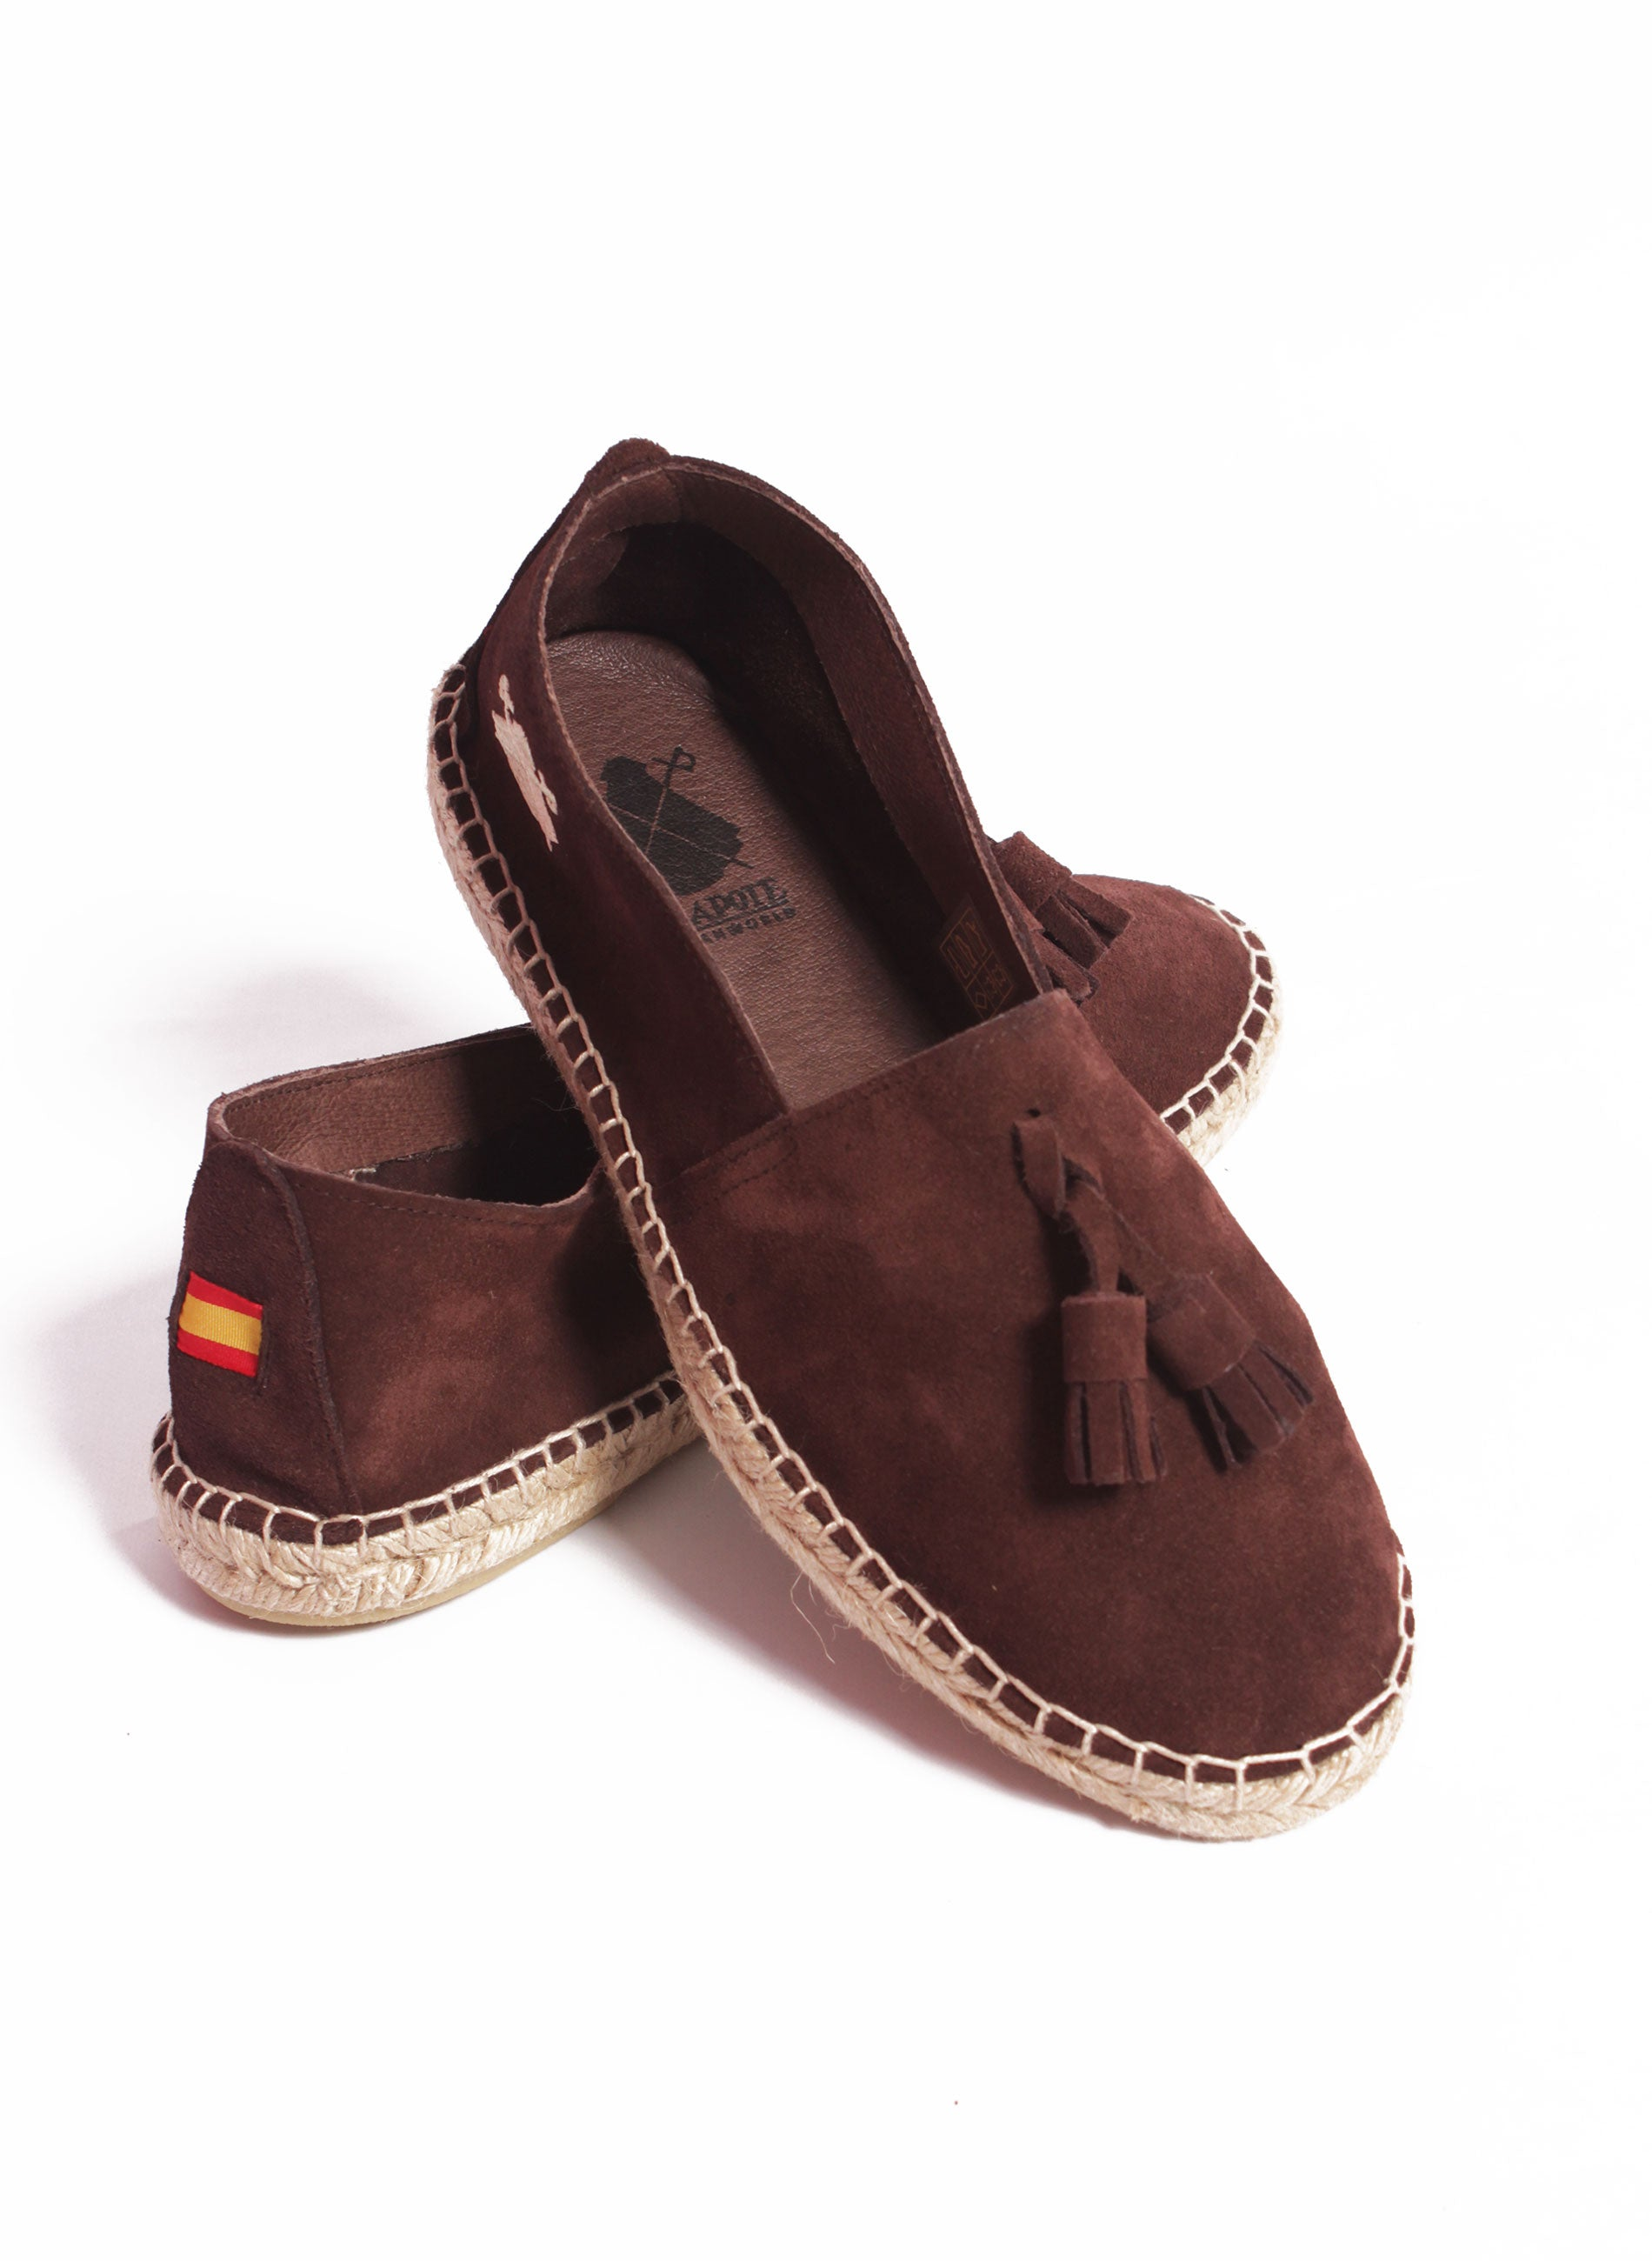 Chocolate Brown Split Leather Espadrilles with Tassels